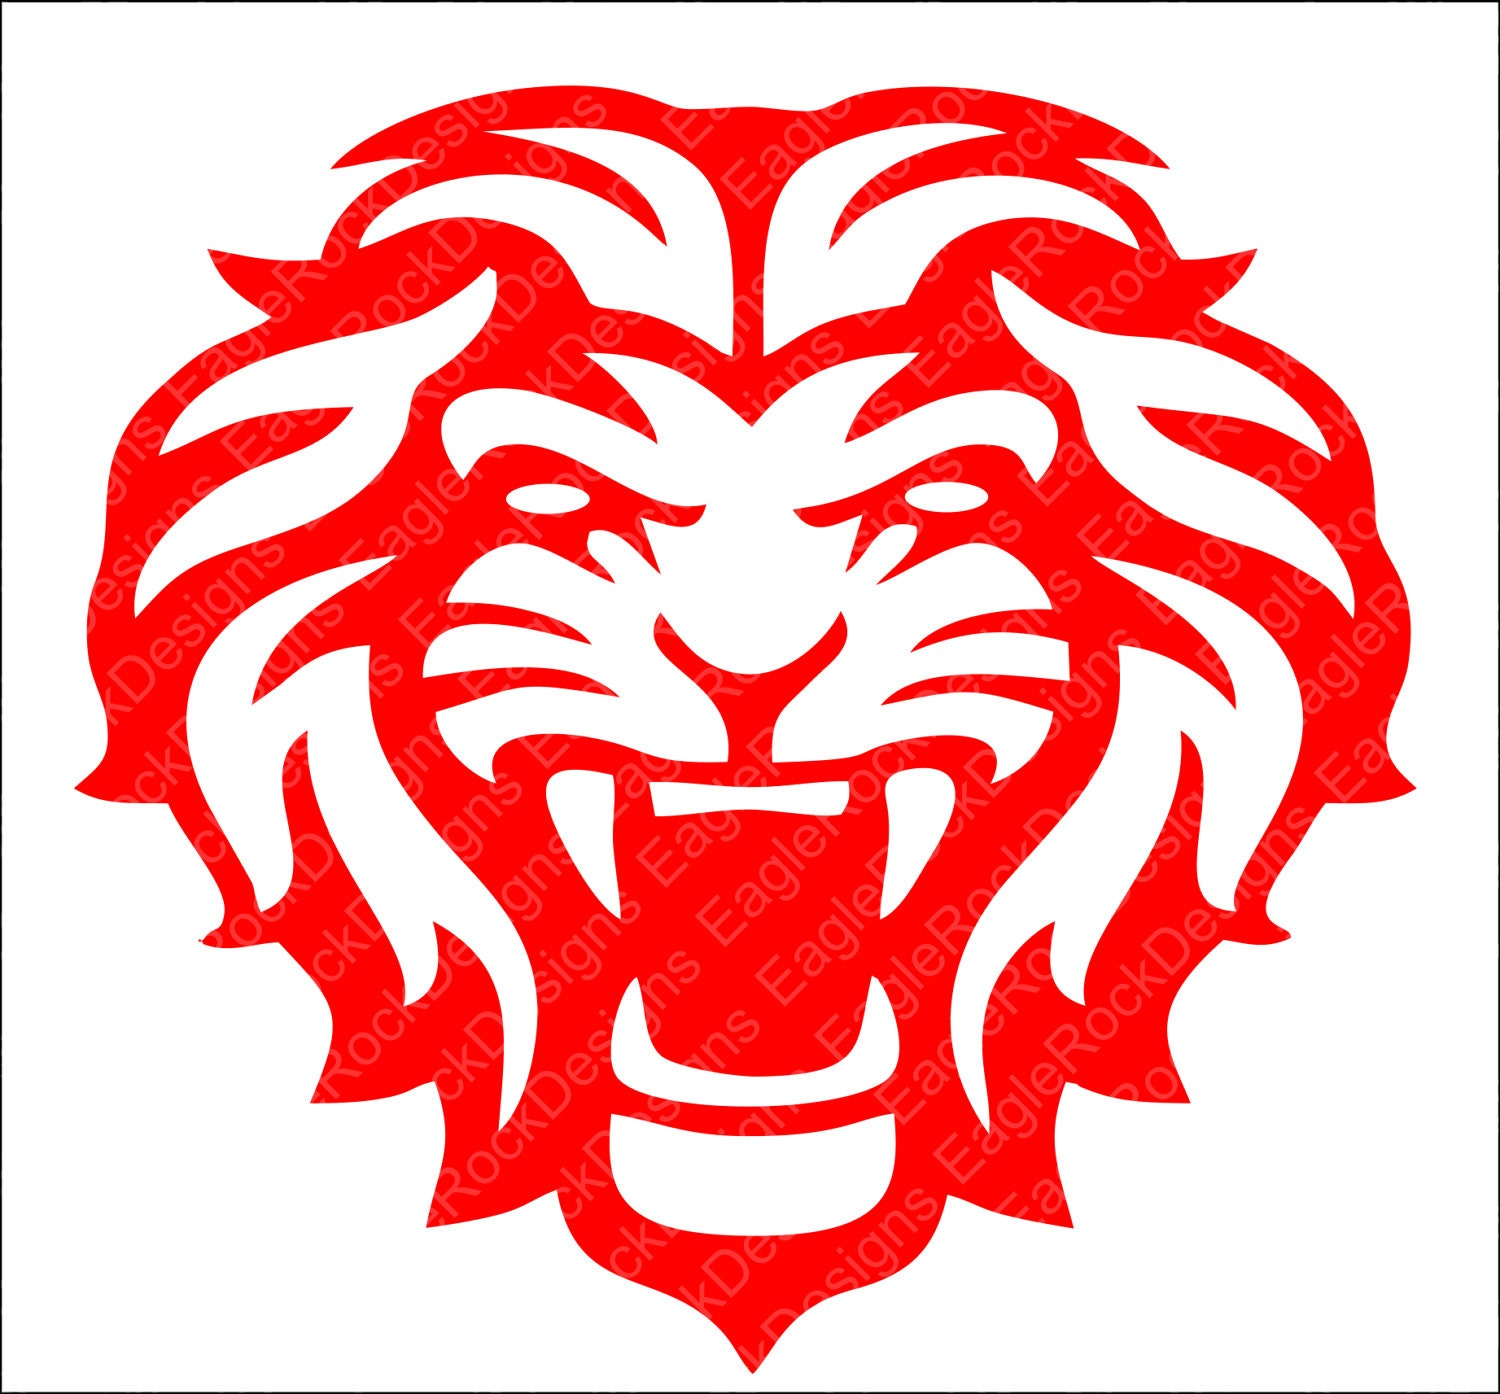 Download Lions| Lion Mascot| SVG| DXF| EPS| Png| Cut File| Football ...